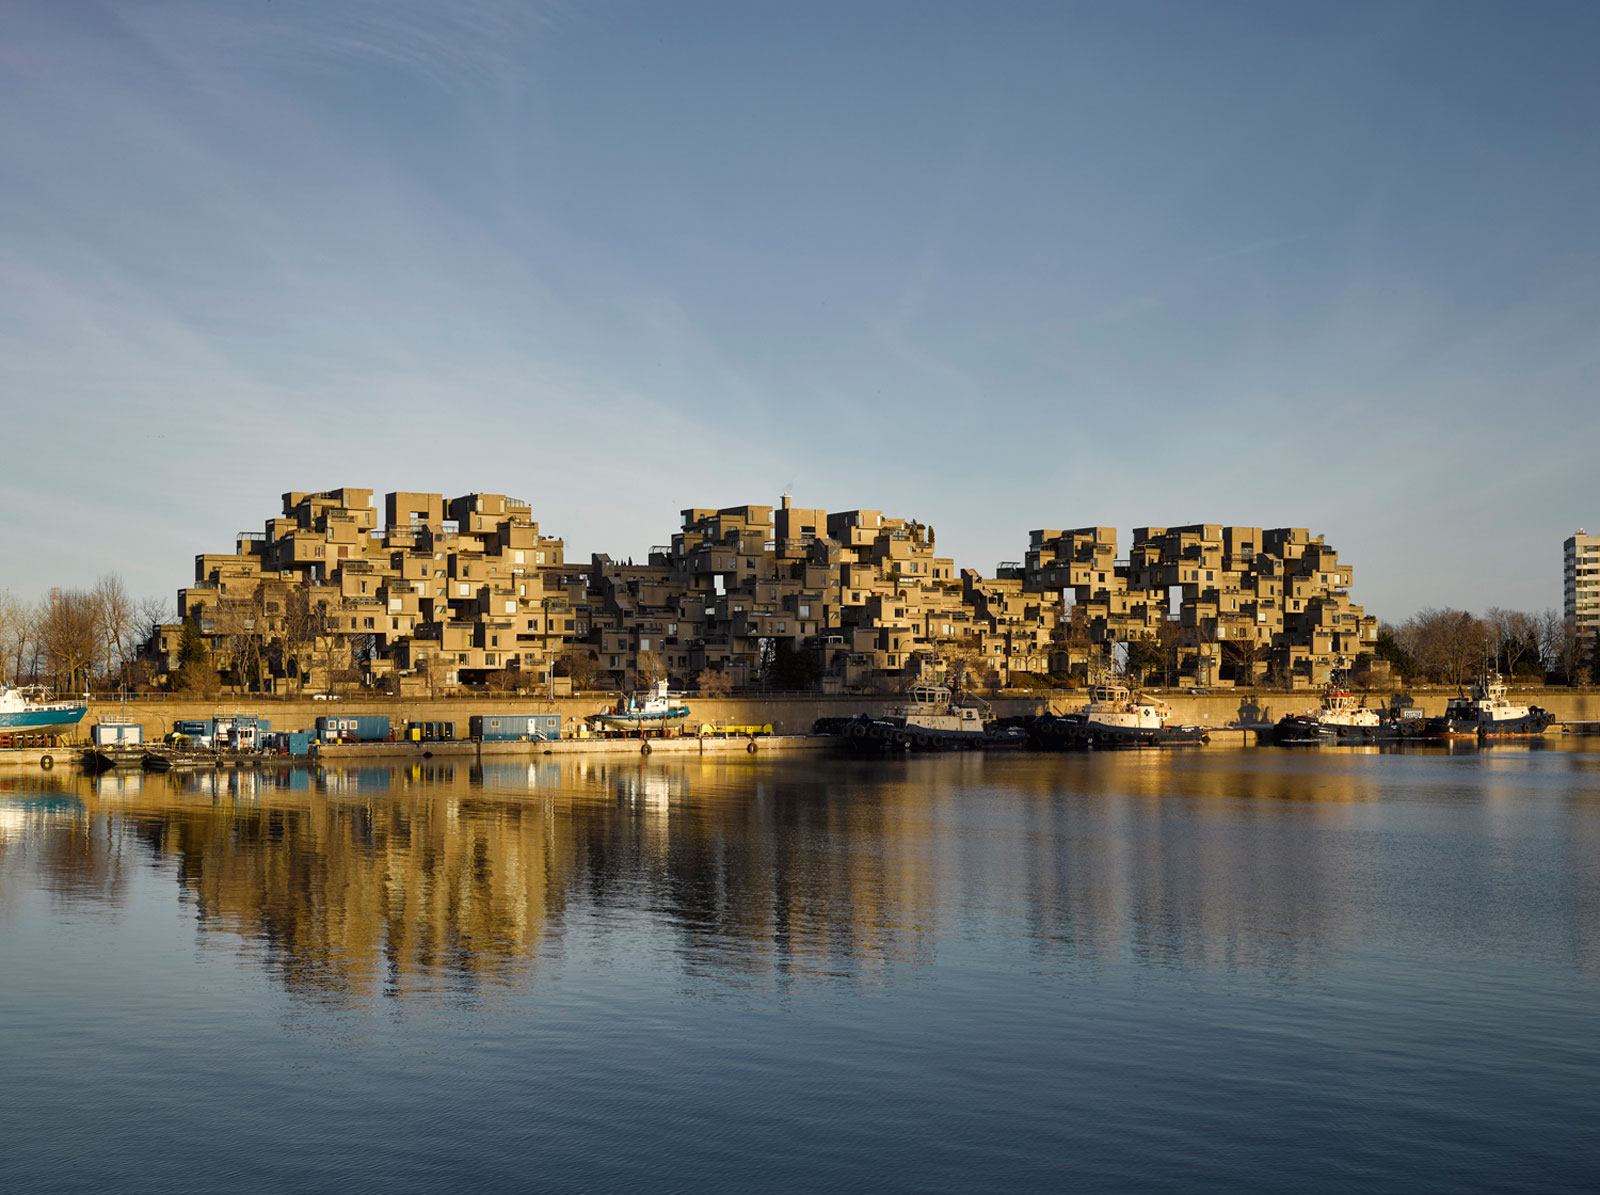 A Look at Montreal's Iconic Housing Complex Habitat 67